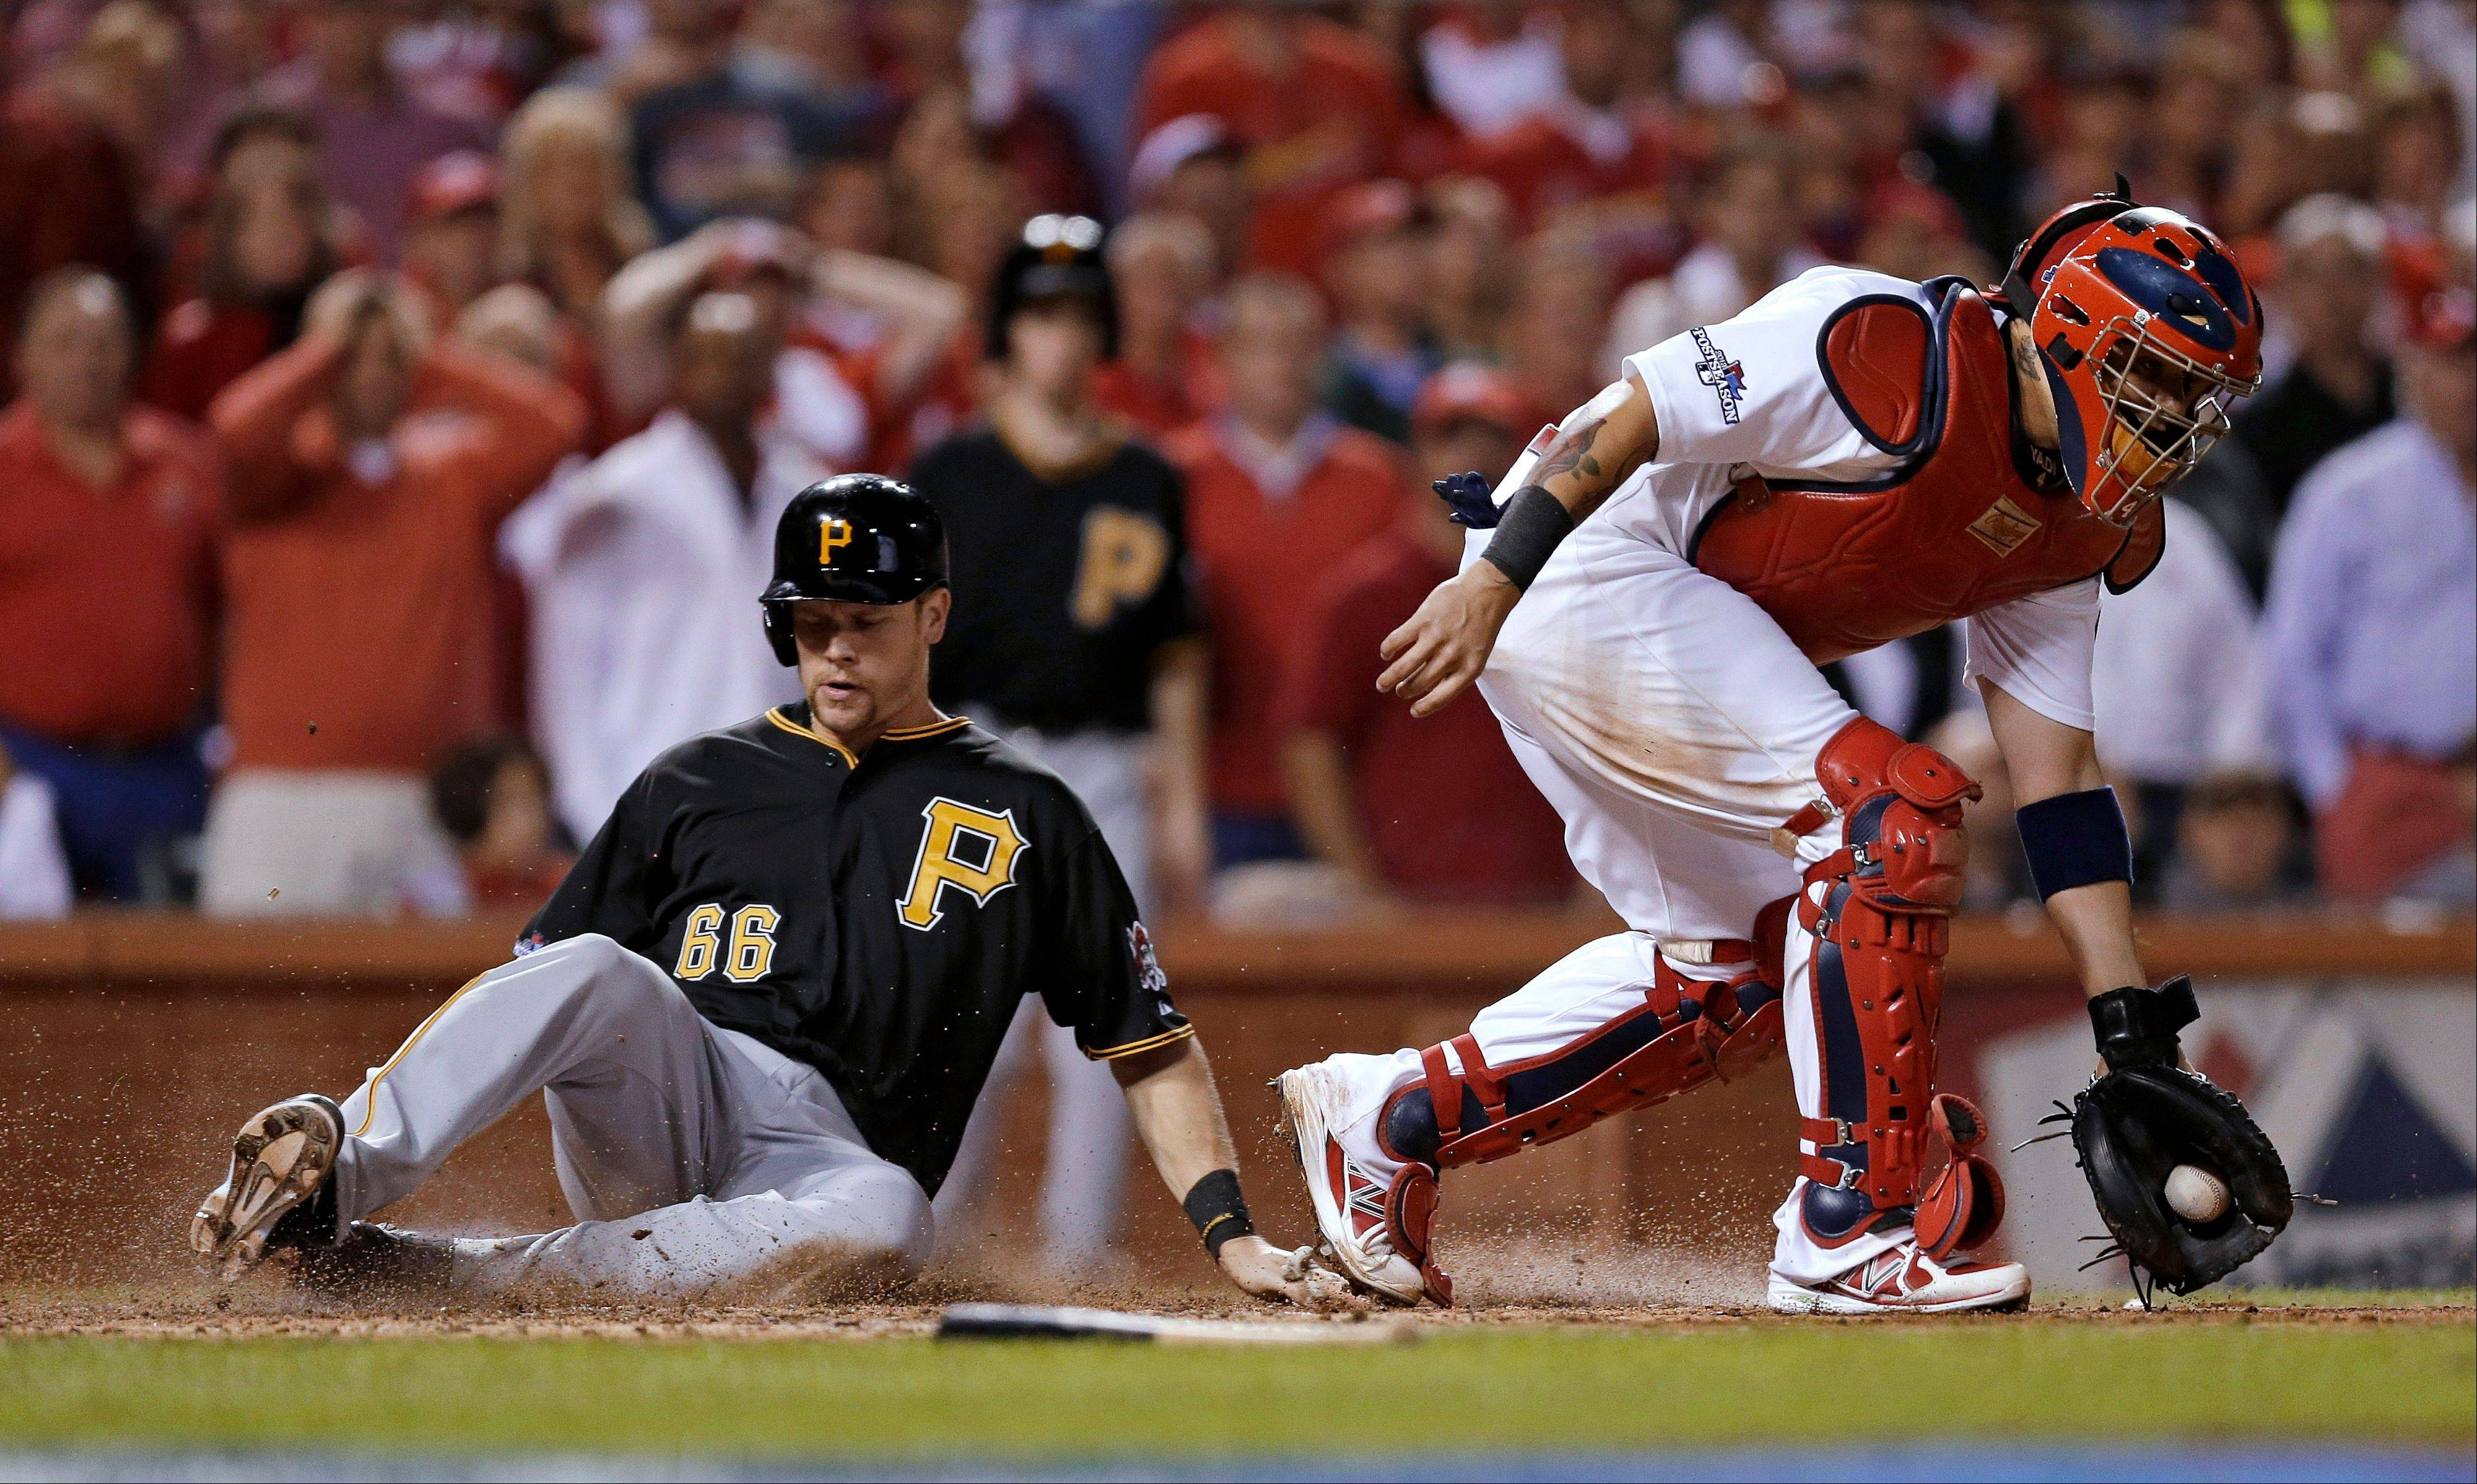 The Pirates' Justin Morneau scores on a ground ball hit by Pedro Alvarez as Cardinals catcher Yadier Molina takes the throw in the top of the seventh inning Wednesday in St. Louis.